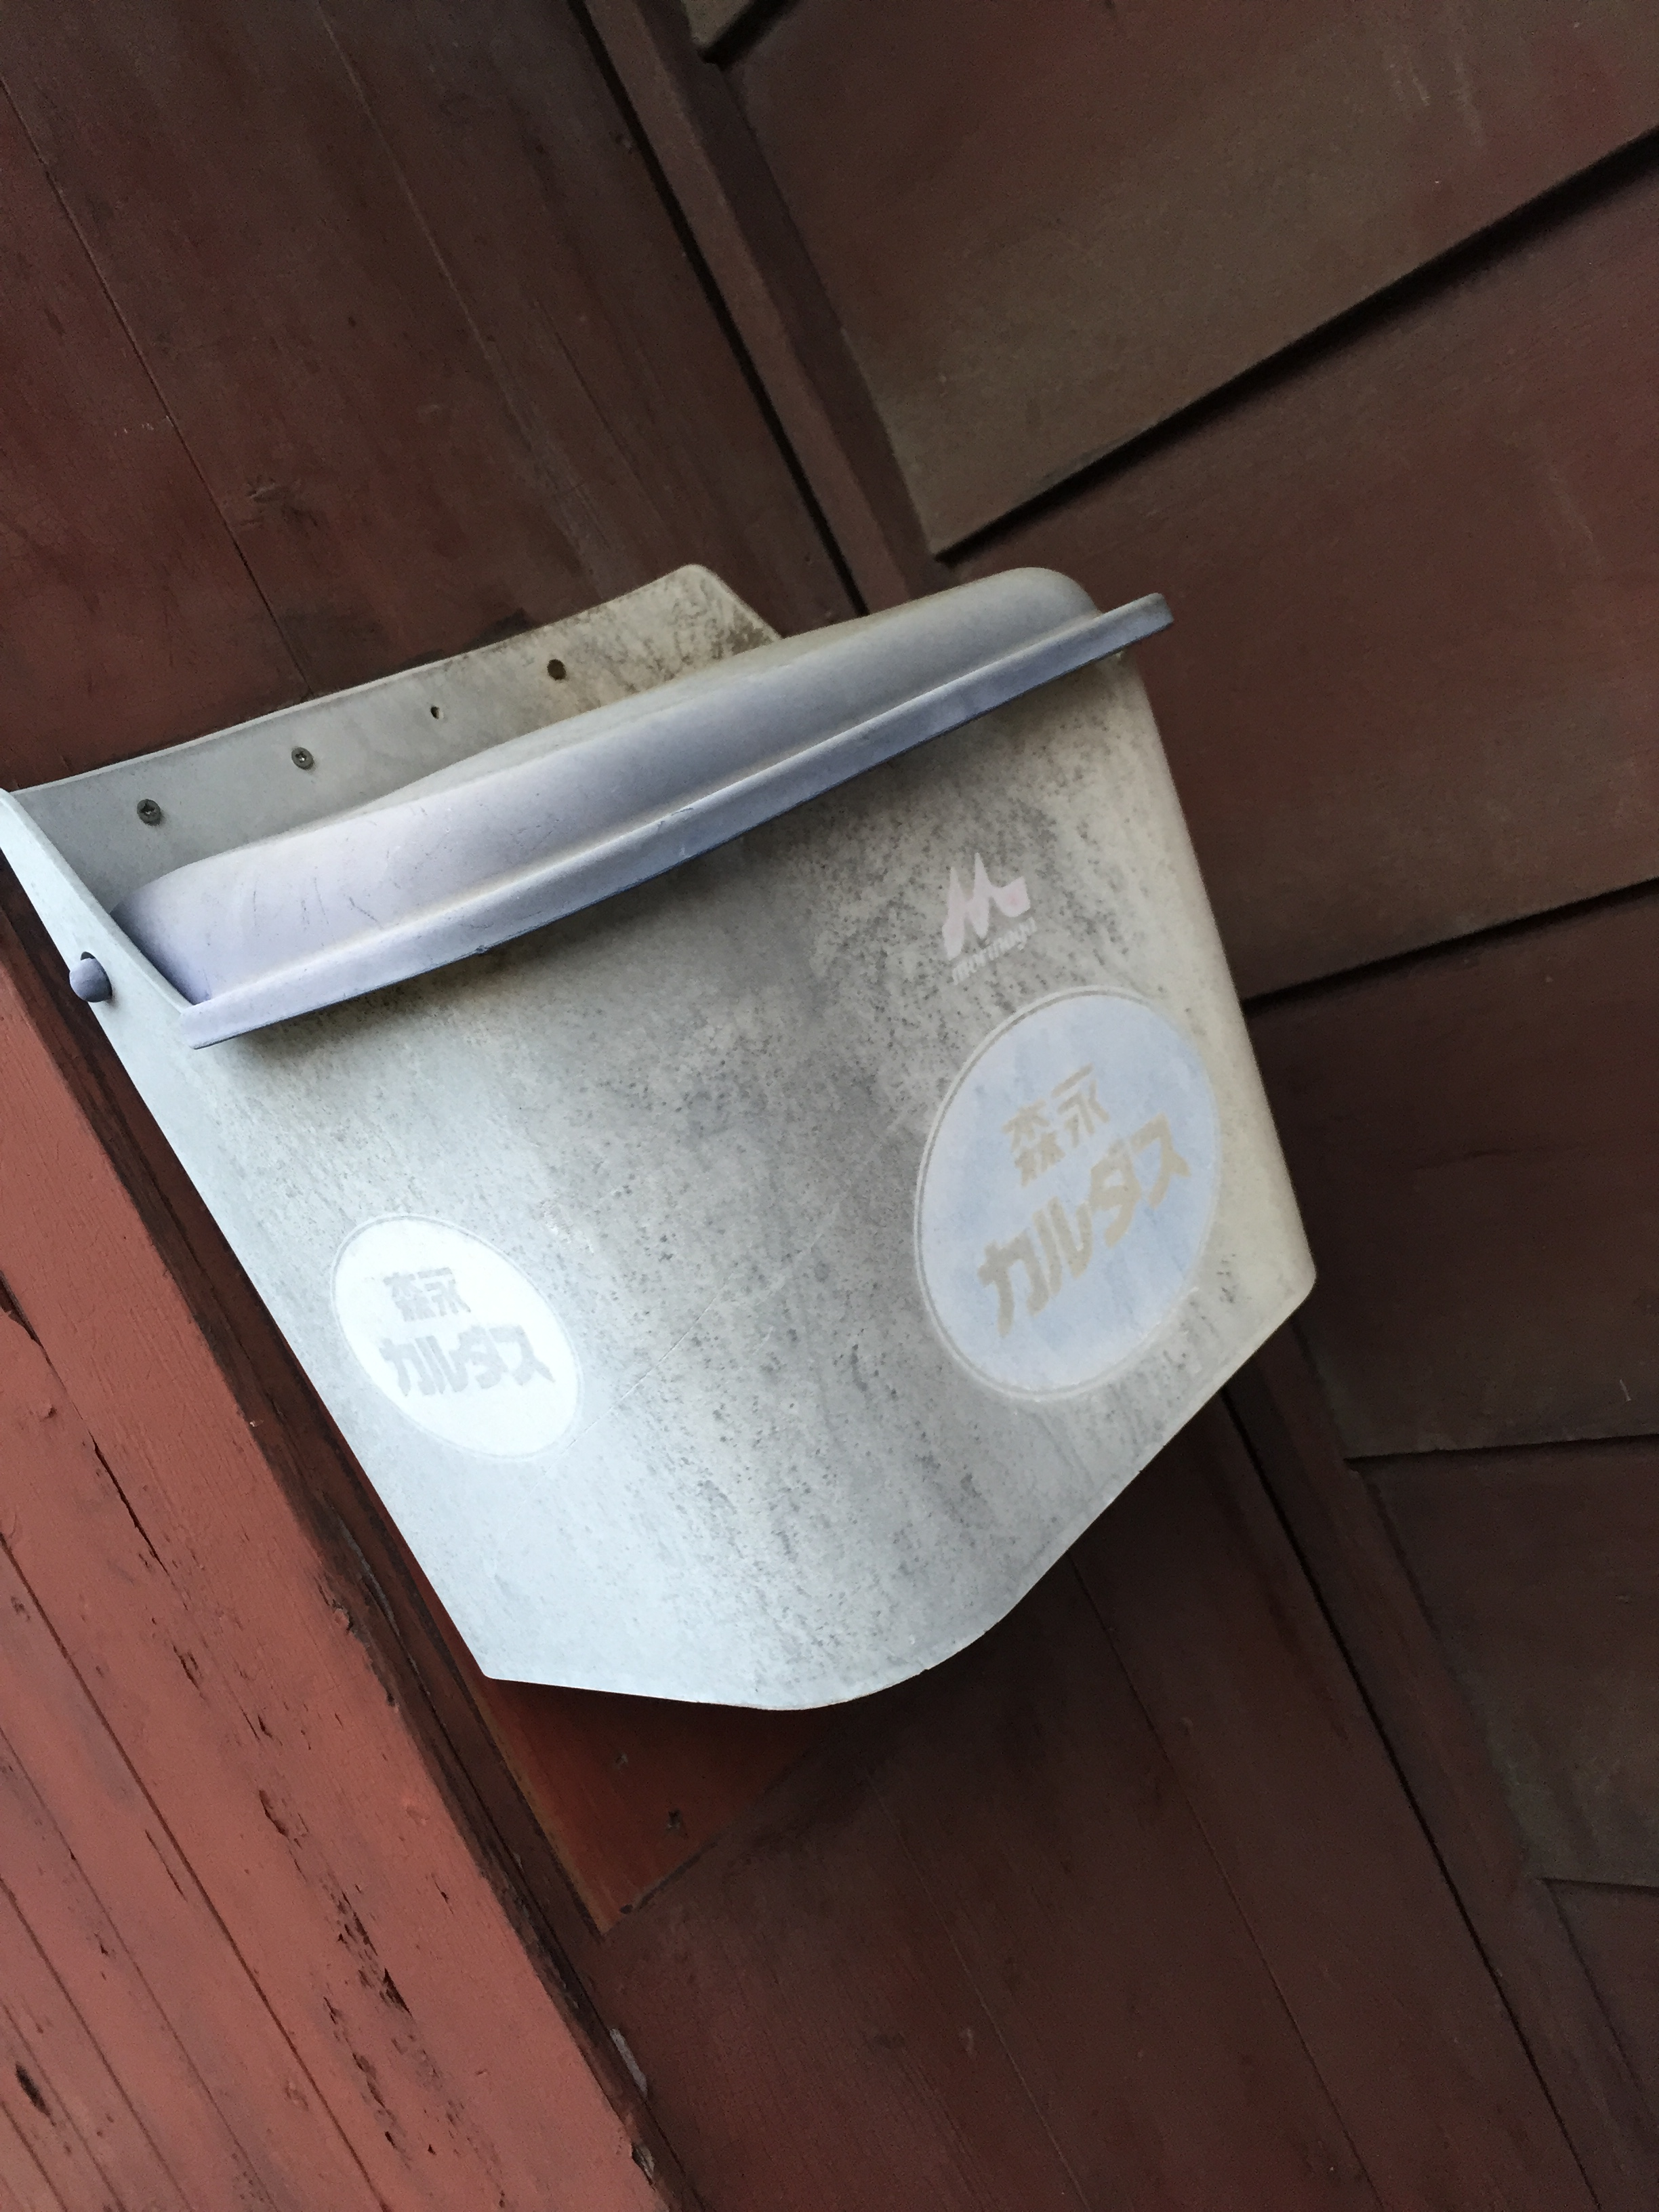 An Old Milk Delivery Box Not Very Common But A Few People Likes Diary Products To Be Delivered At Their Home In Well Sure This One Is Still